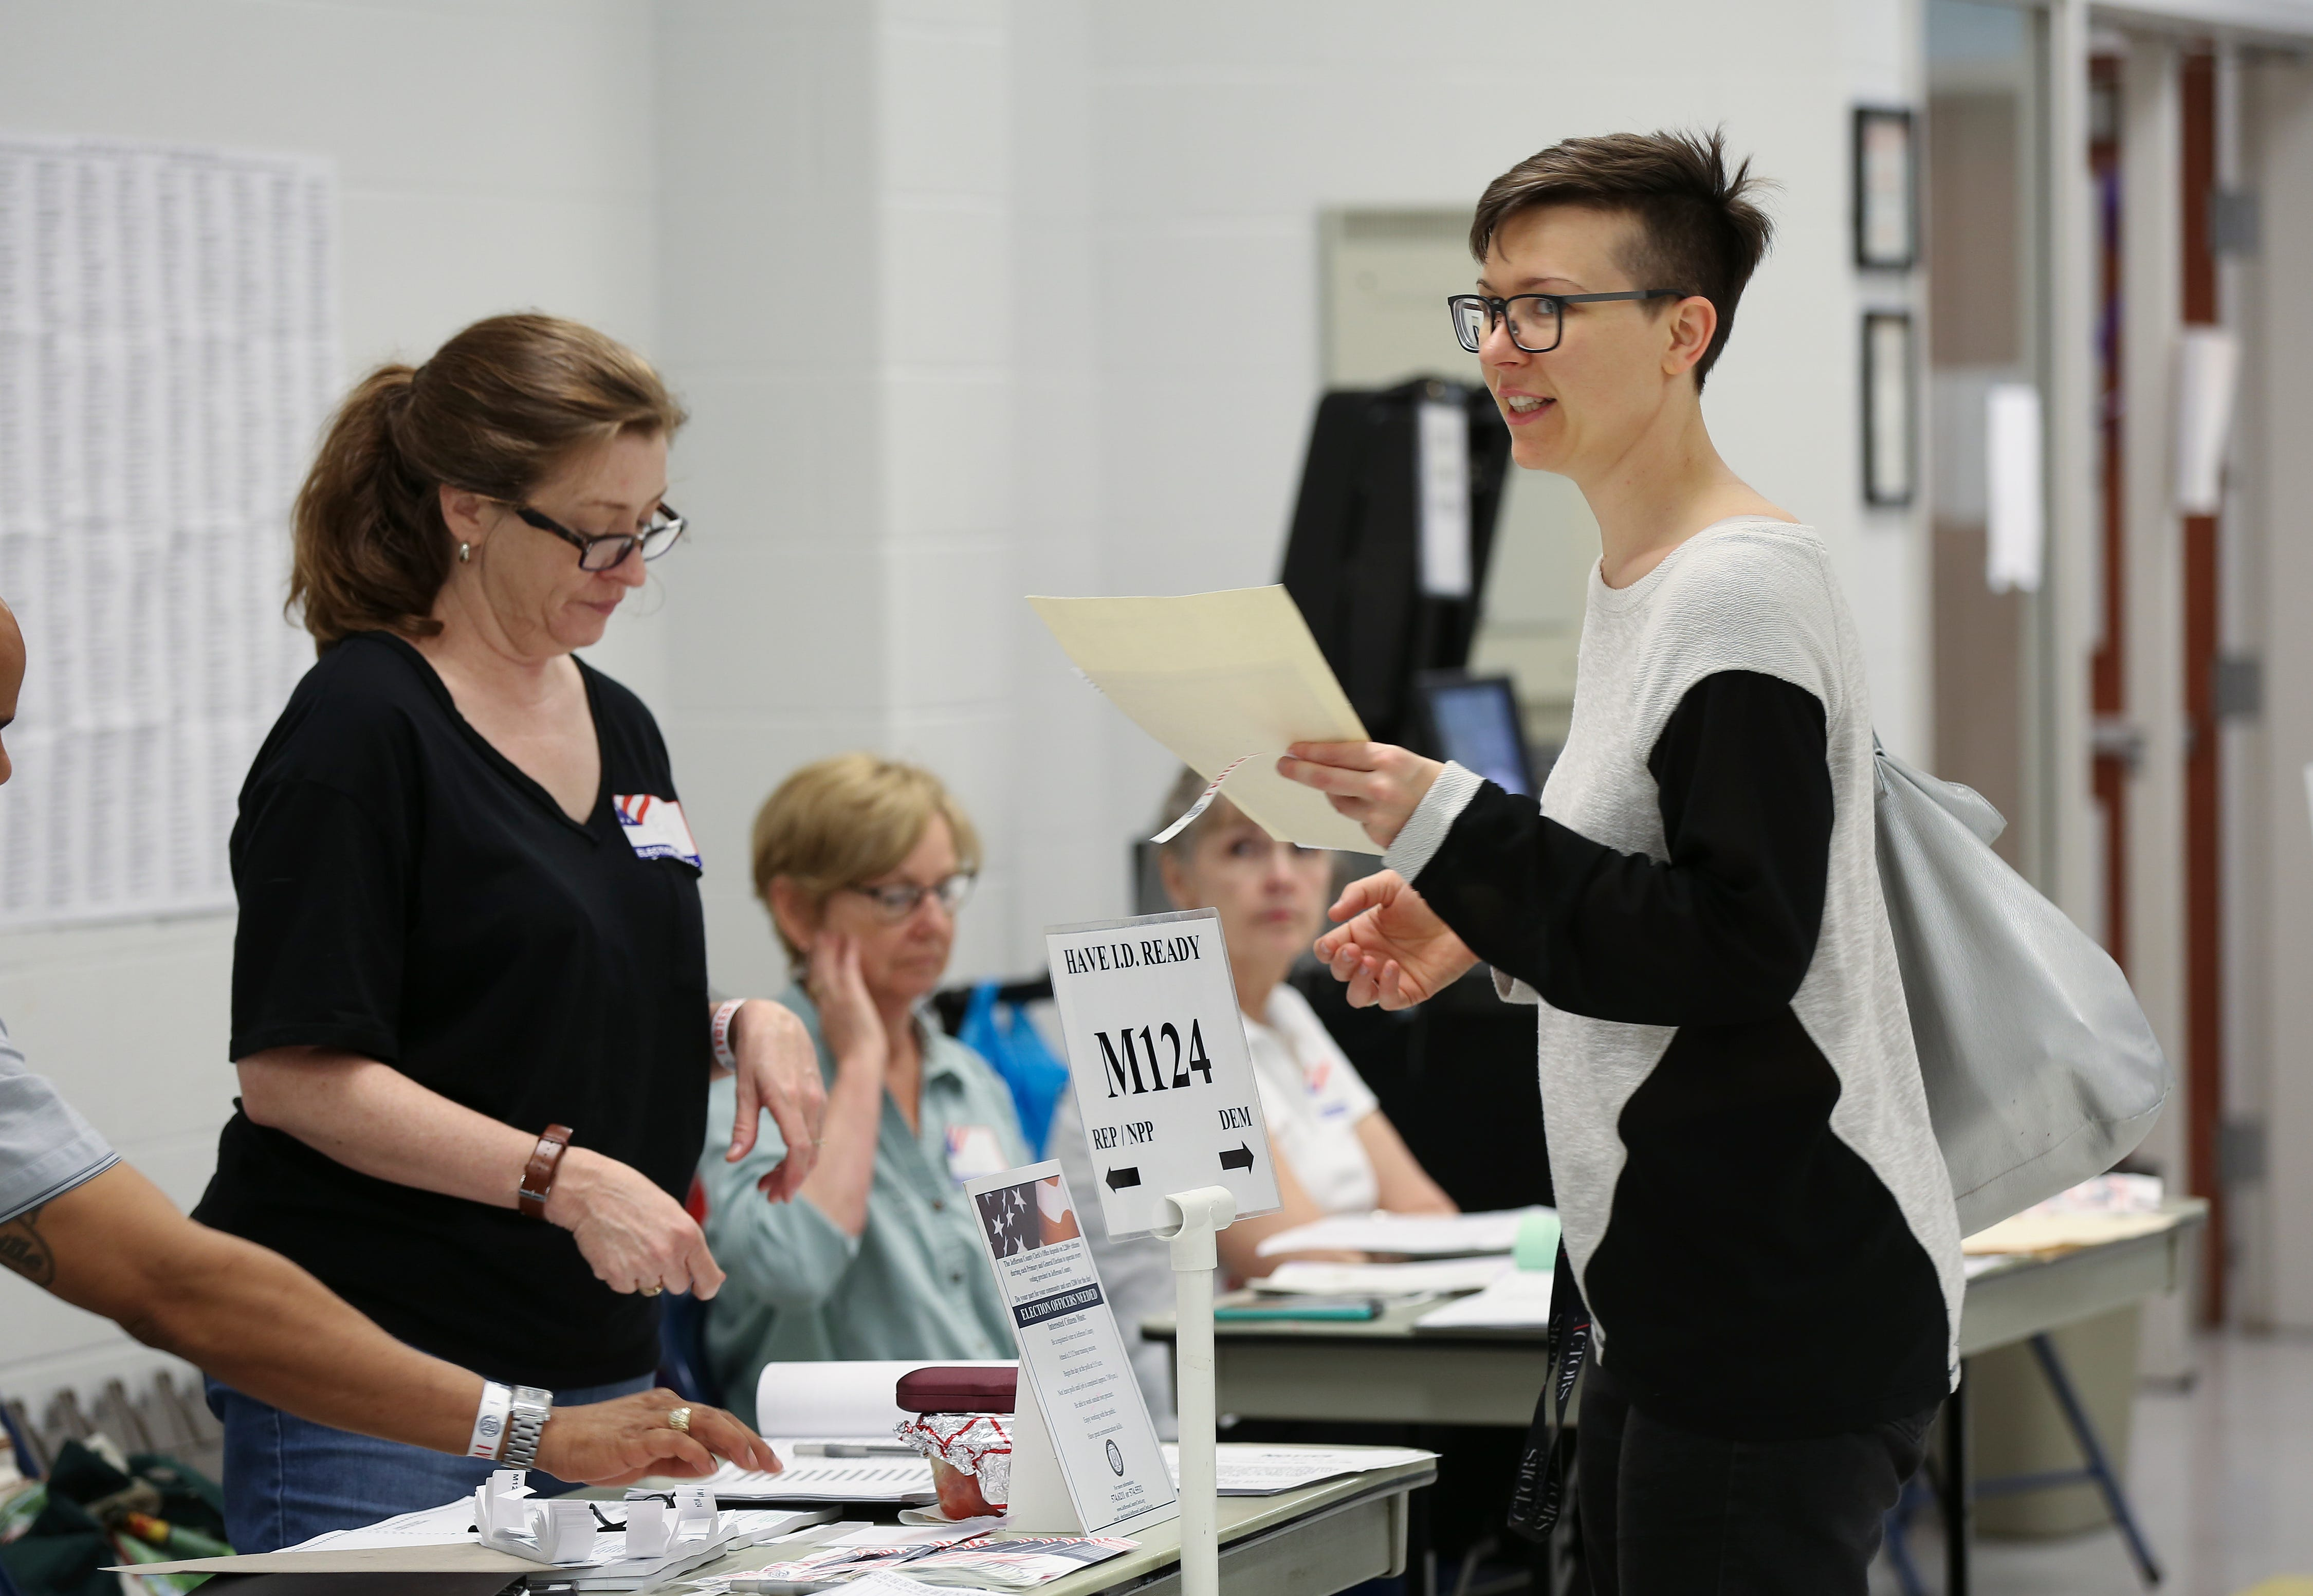 64eaddb863 http   www.courier-journal.com picture-gallery news politics 2018 07 ...